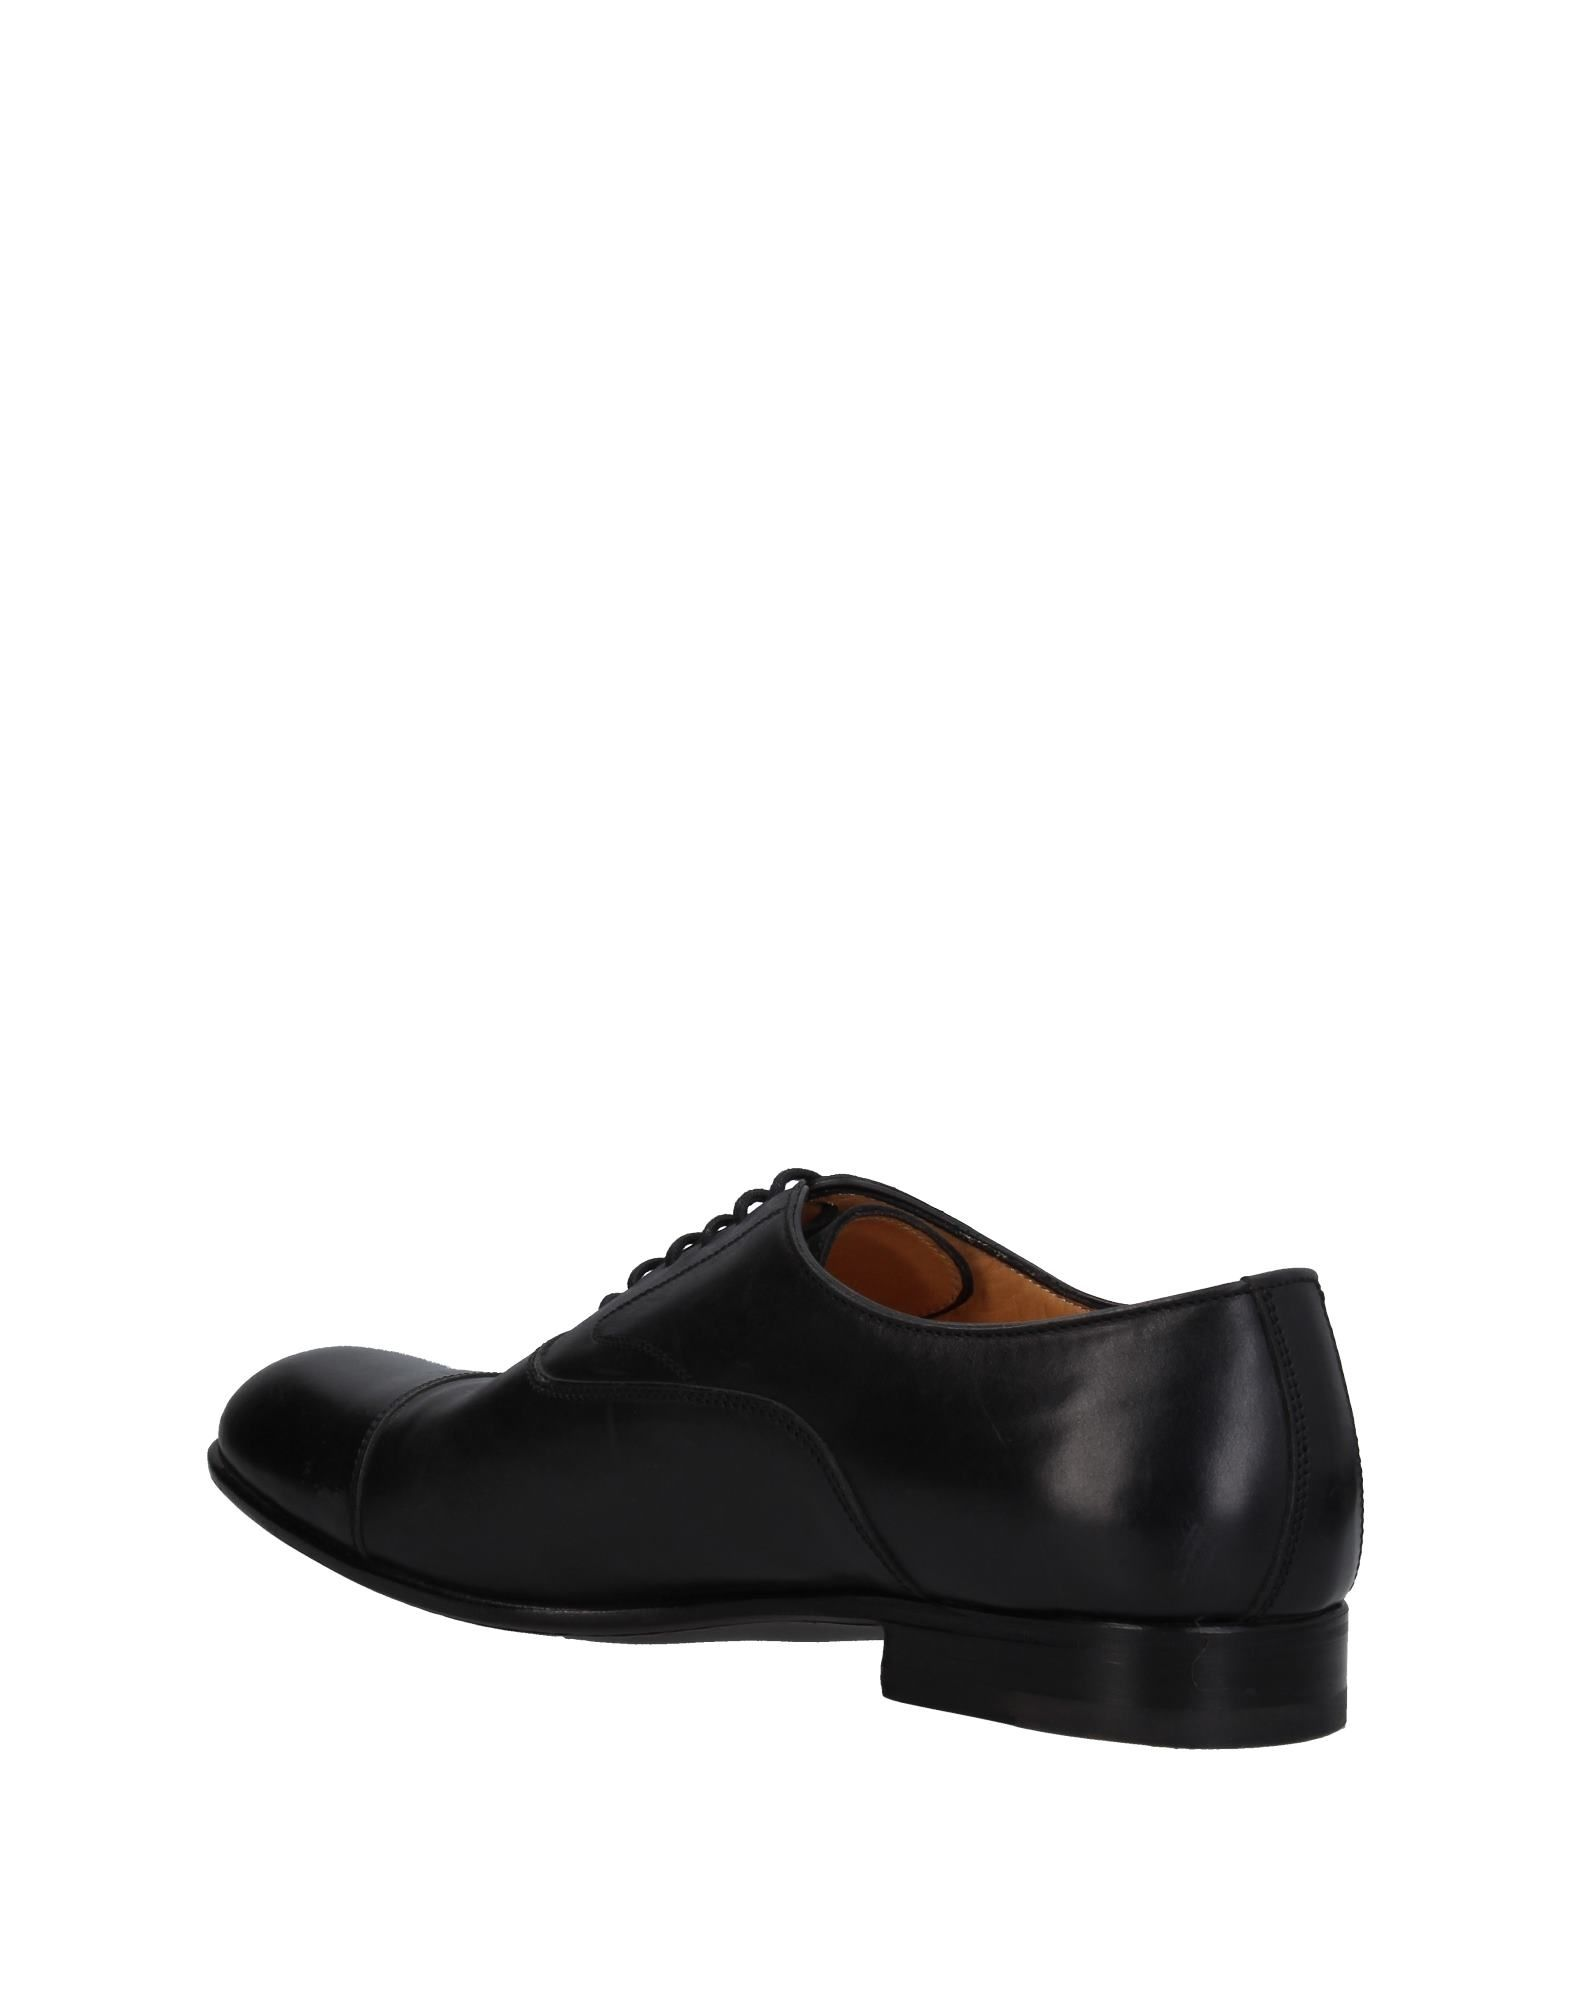 Chaussures À Lacets Migliore Homme - Chaussures À Lacets Migliore sur